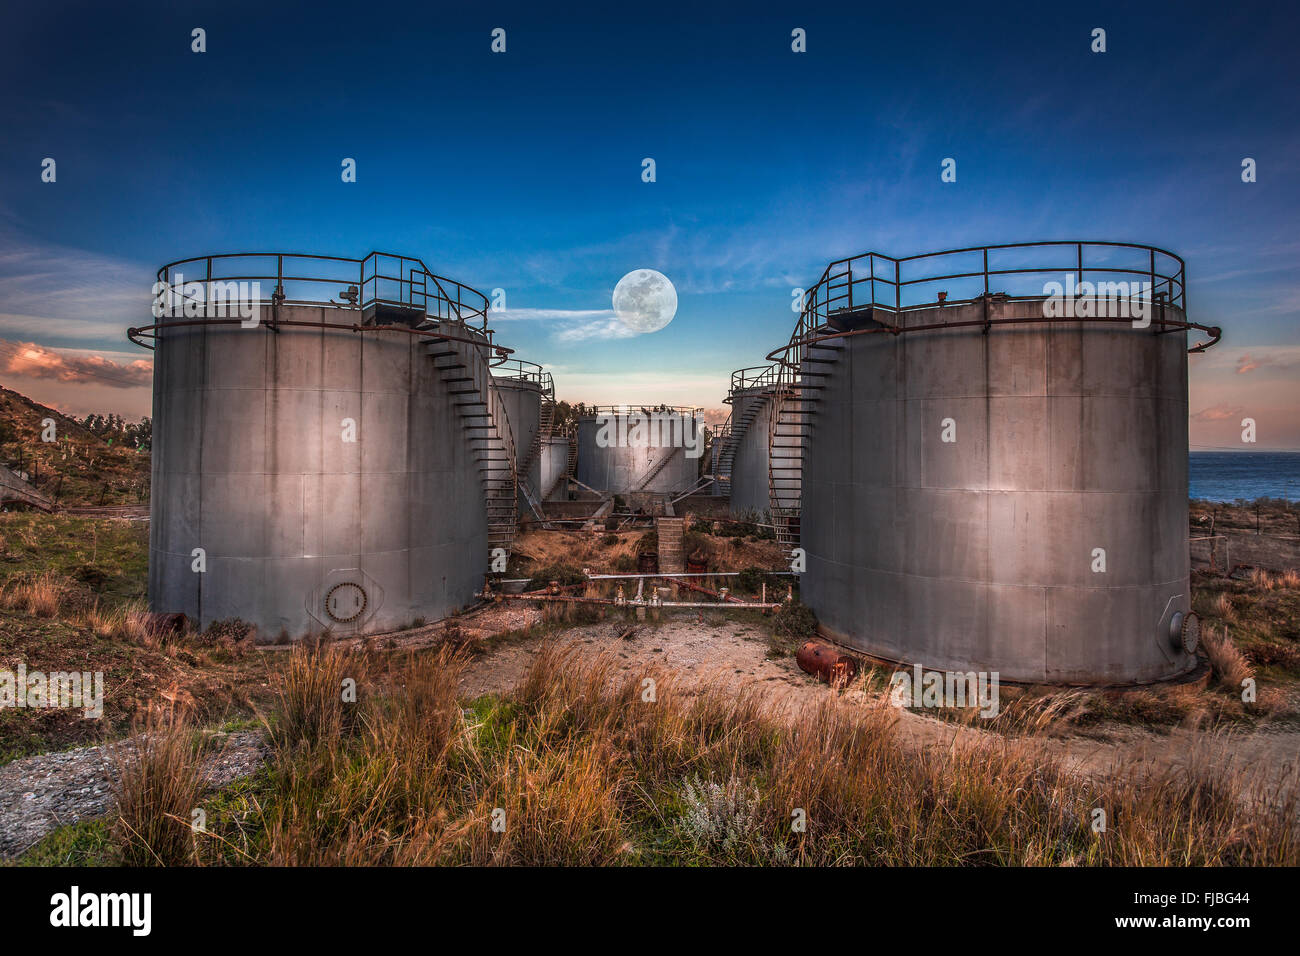 Full moon rising above the old oil refinery - Stock Image